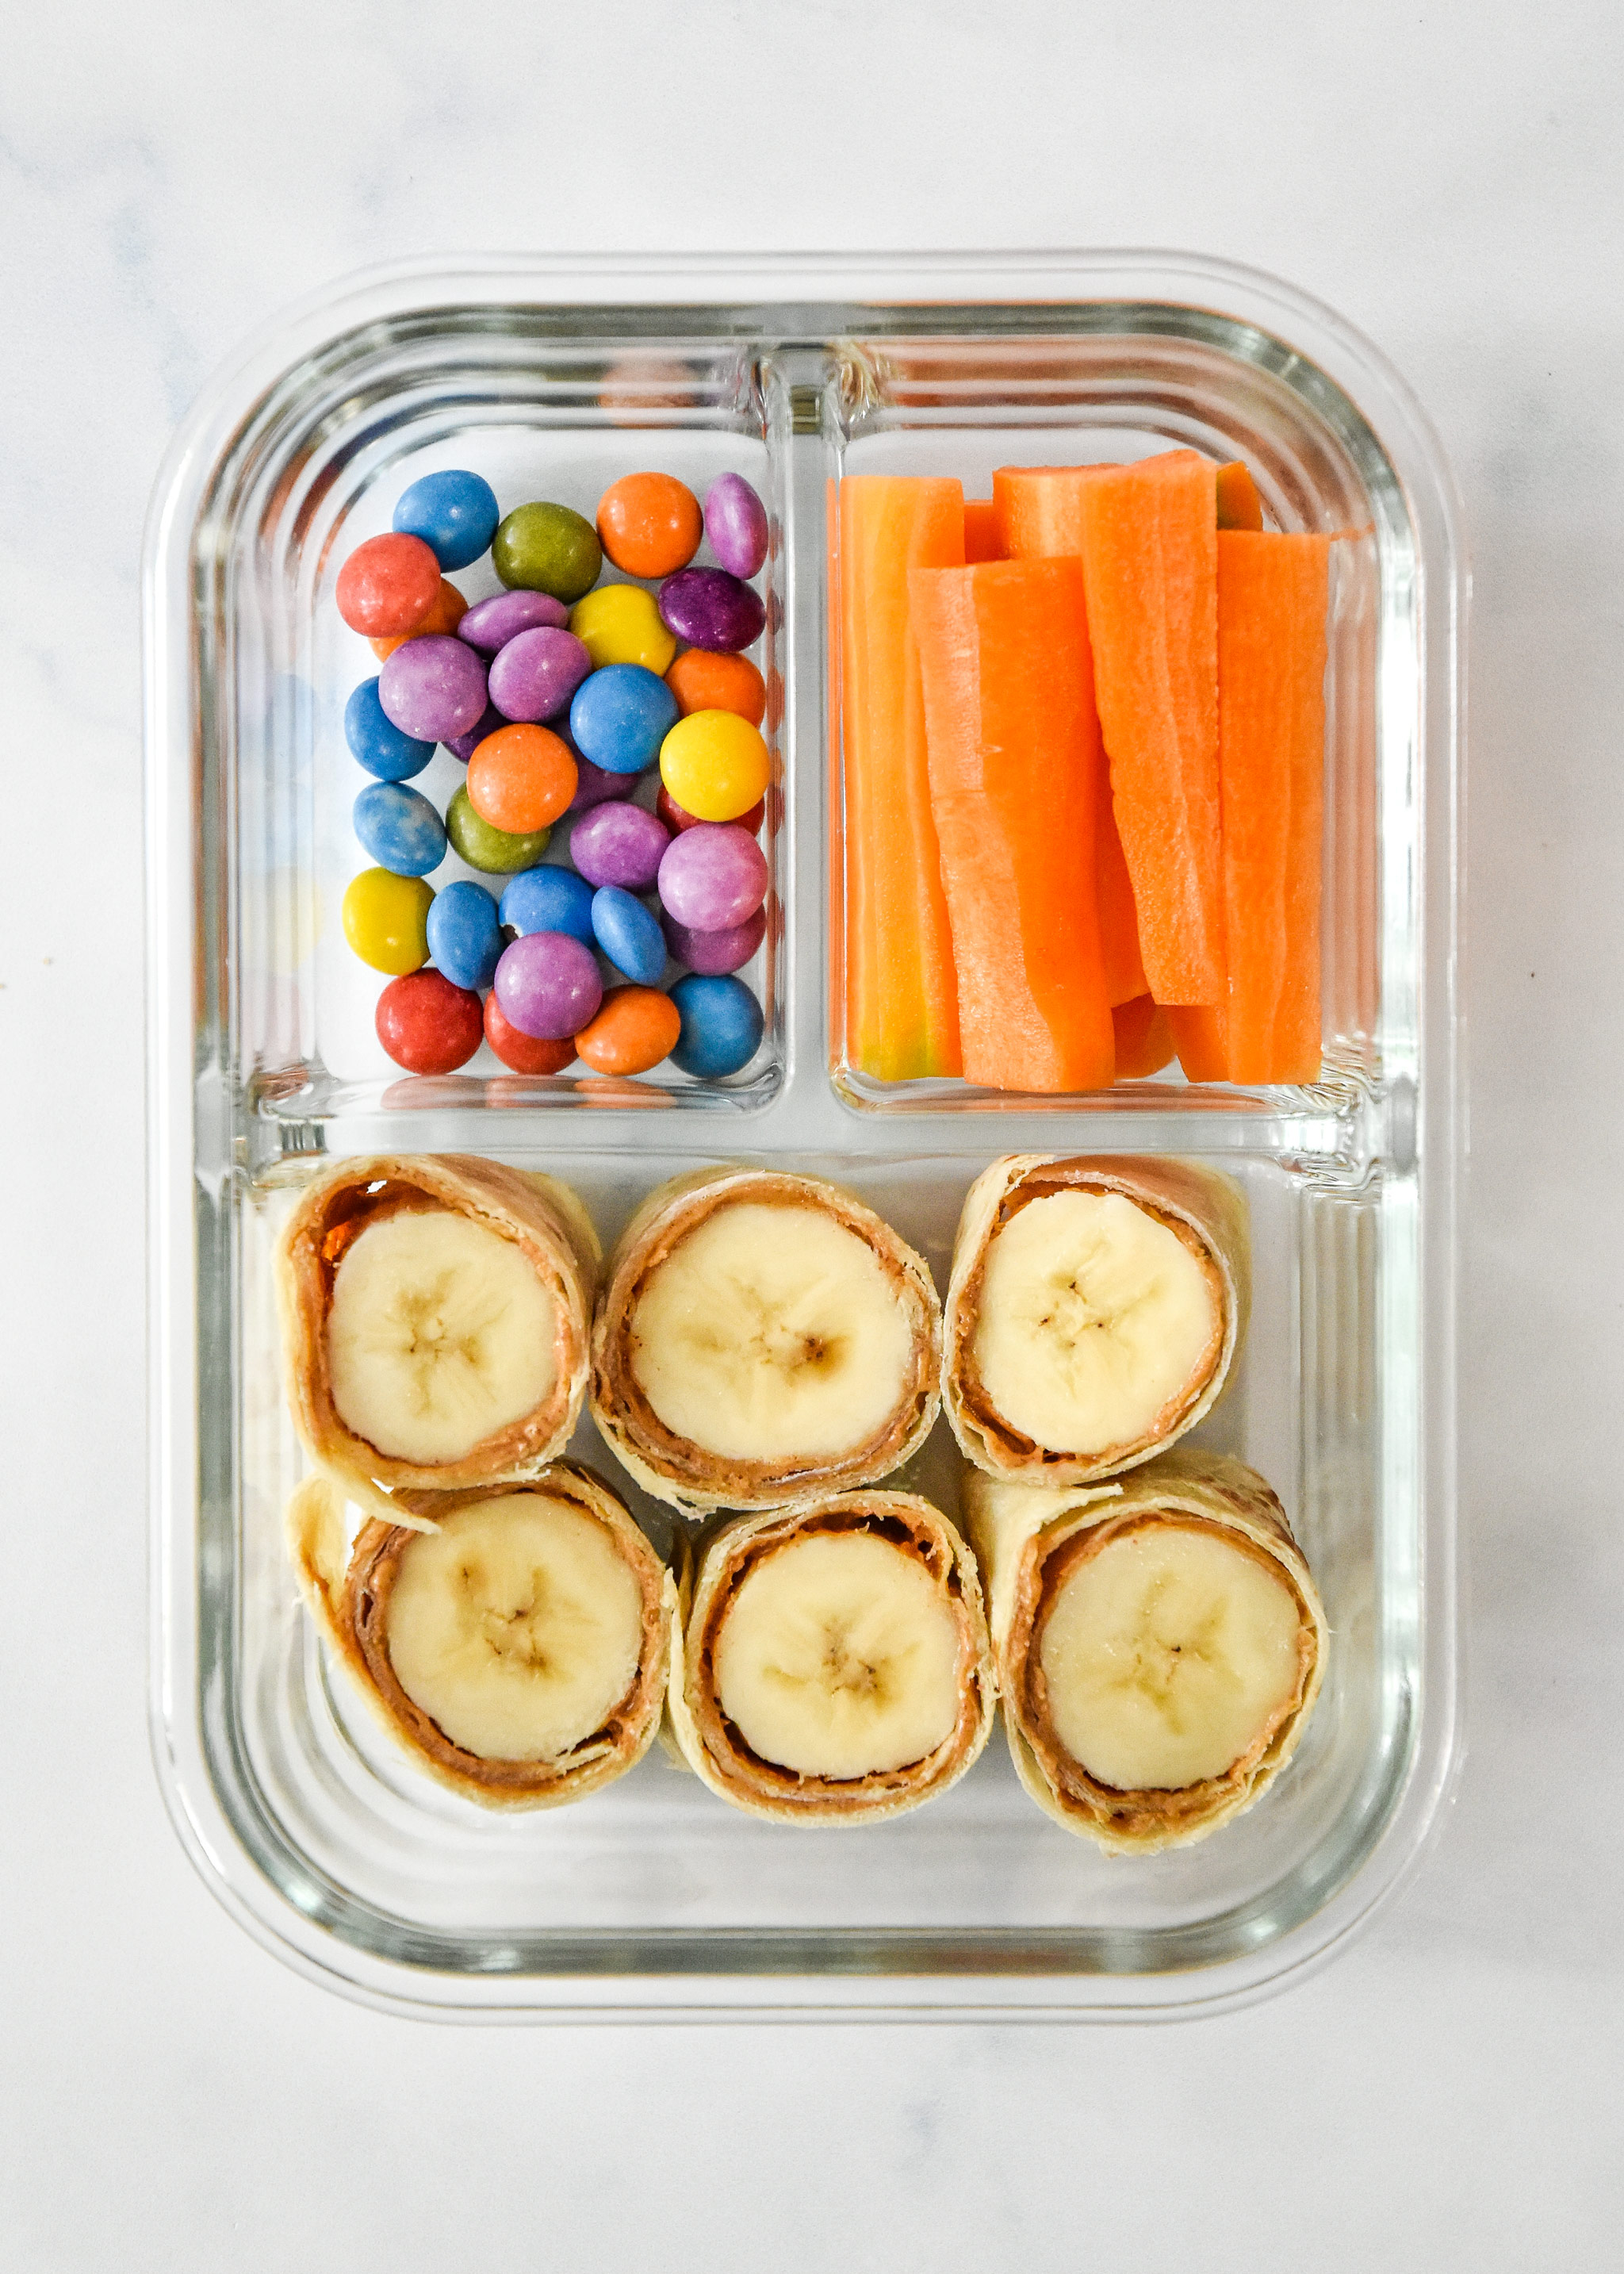 pb banana roll ups with carrot sticks and chocolate candies in a glass meal prep container.